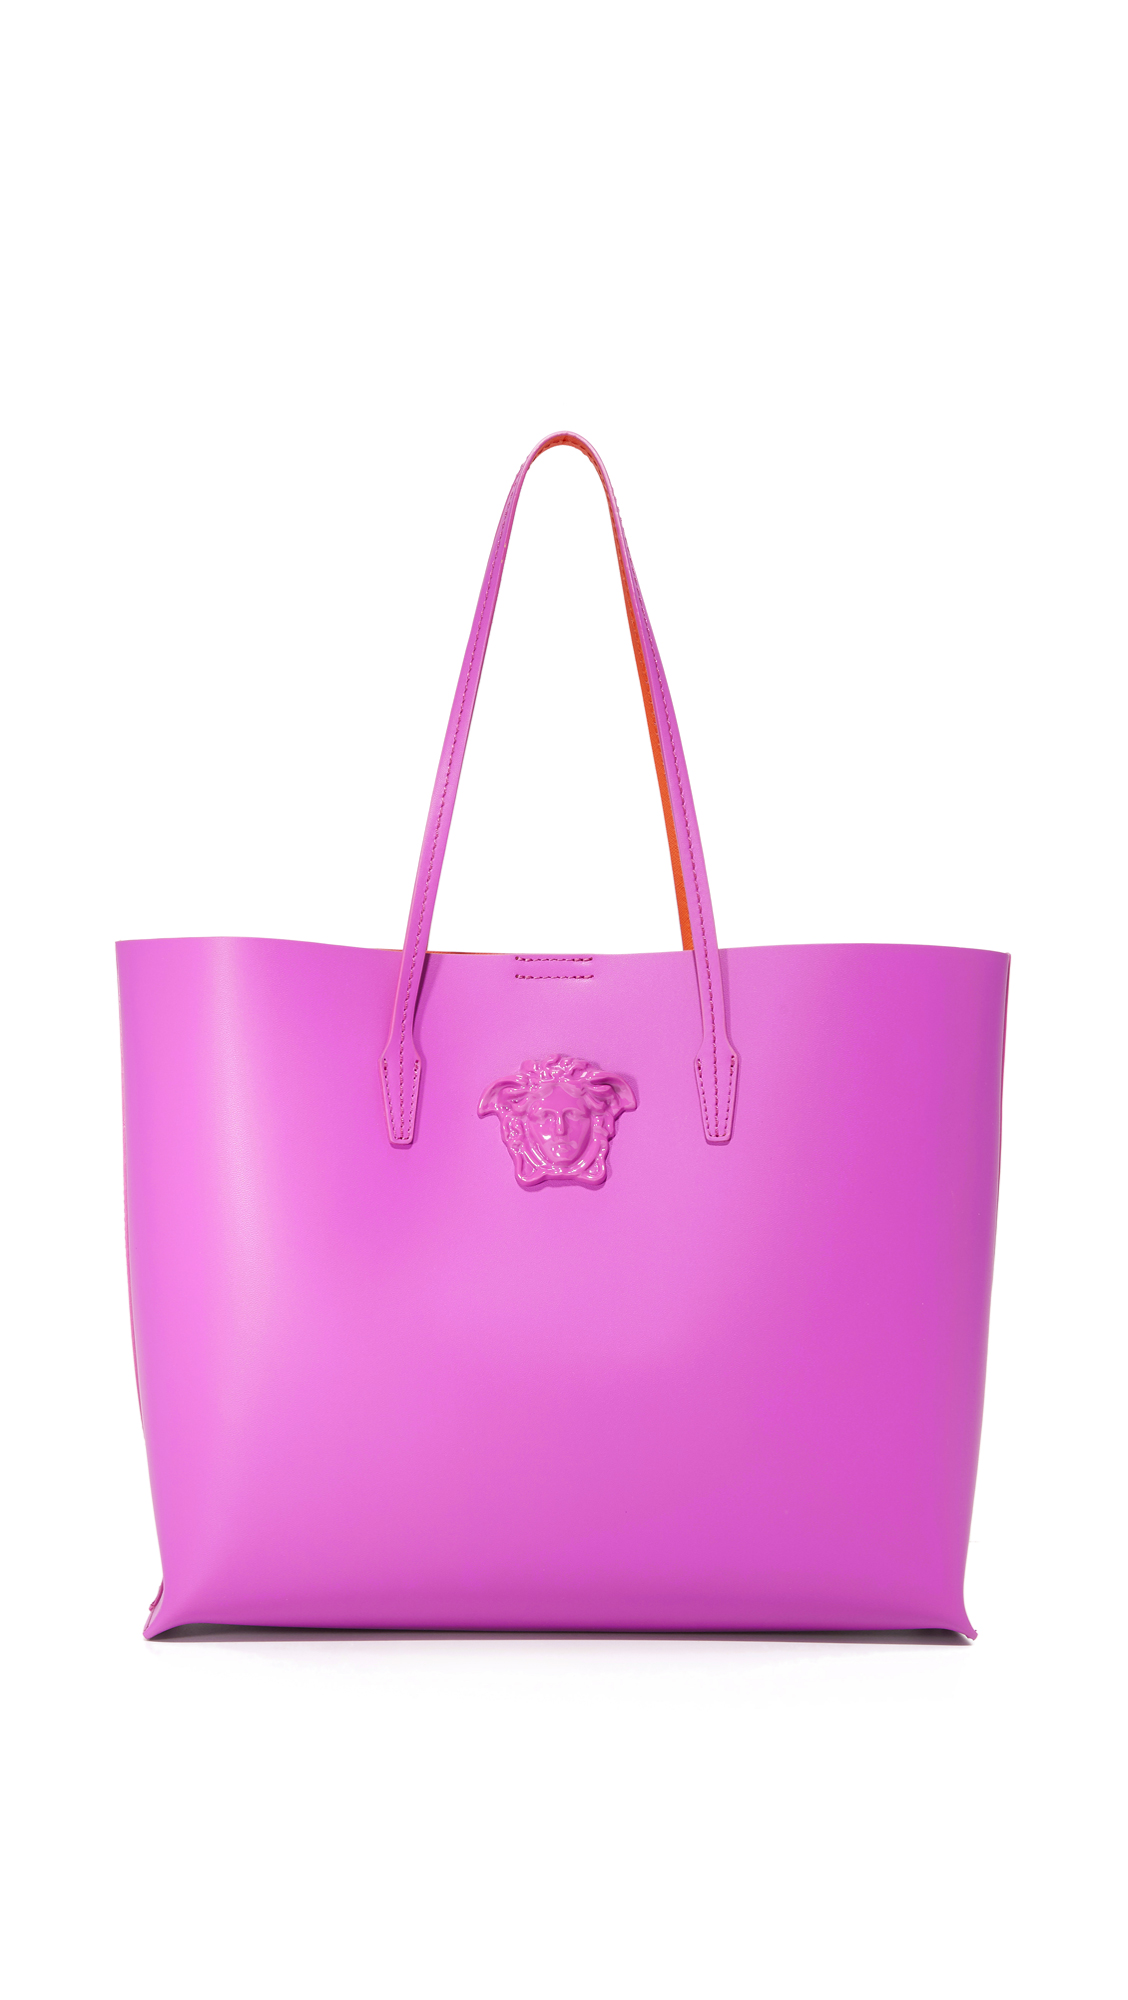 versace female versace large tote pink